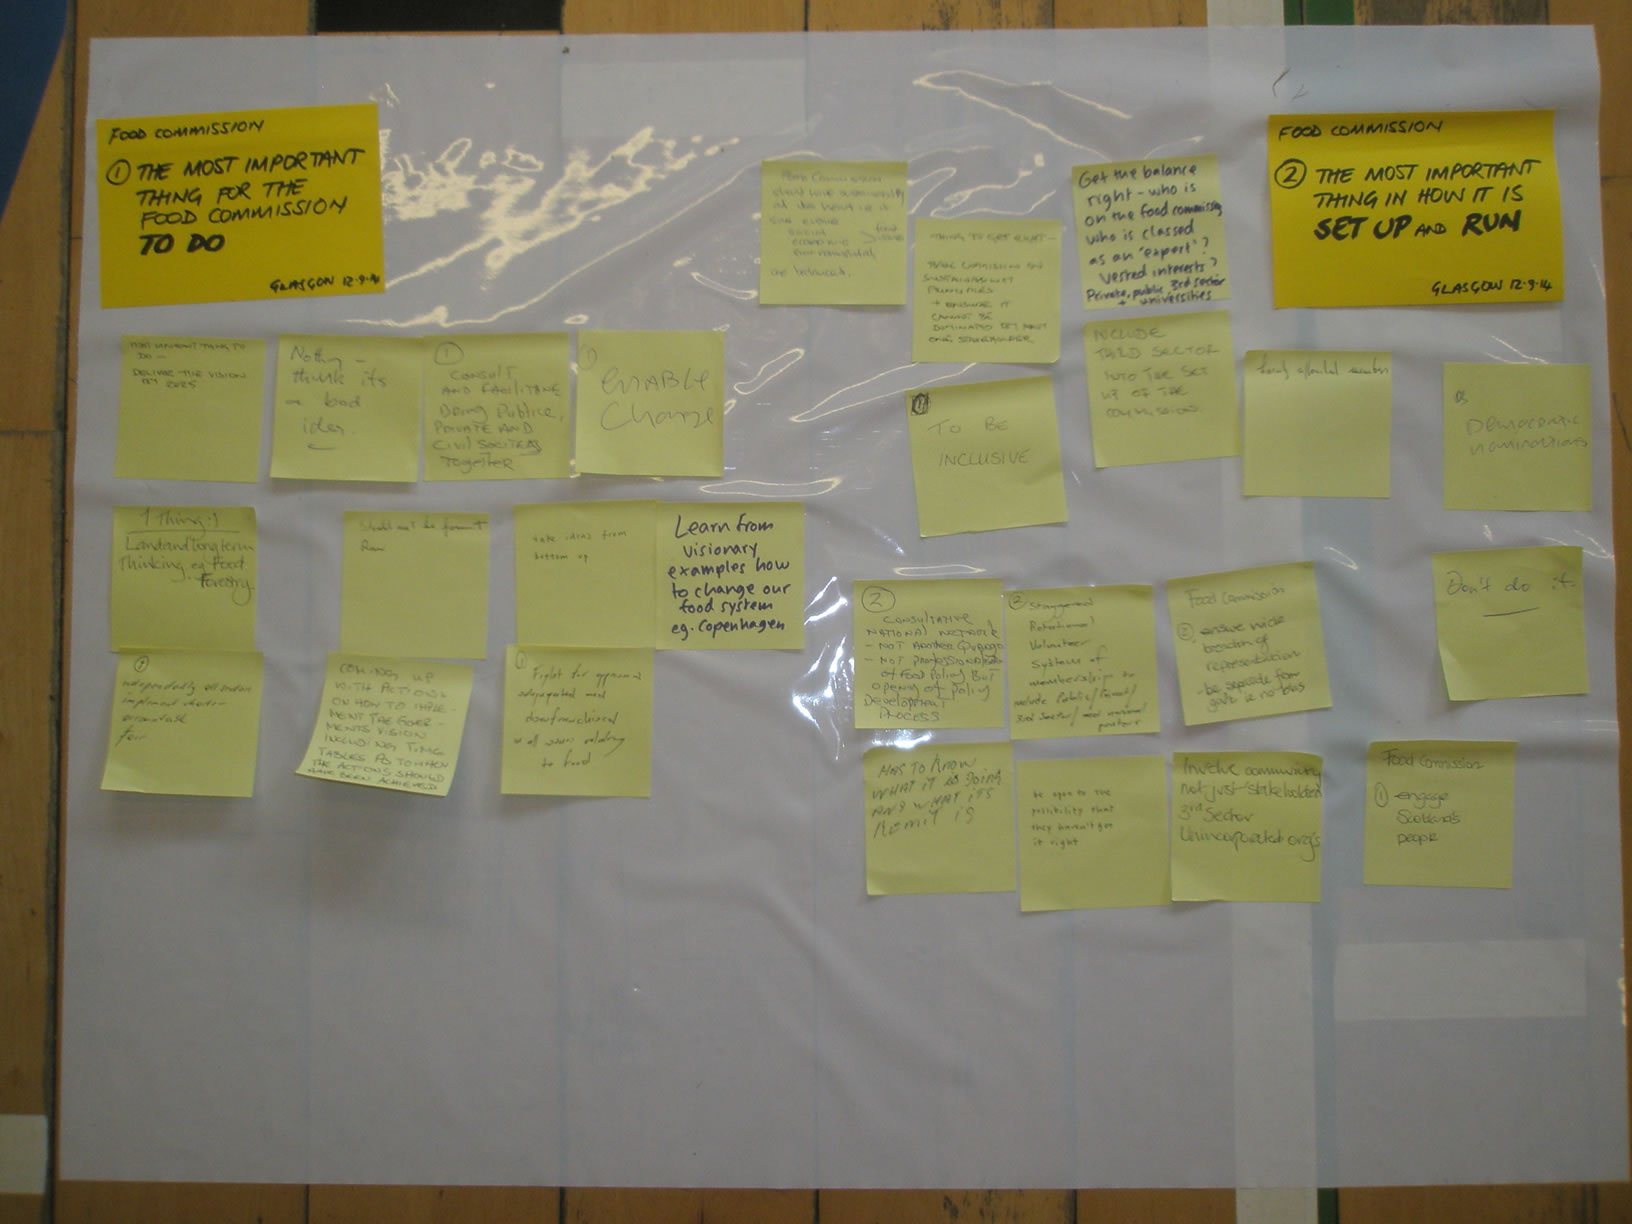 Glasgow consultation event 46